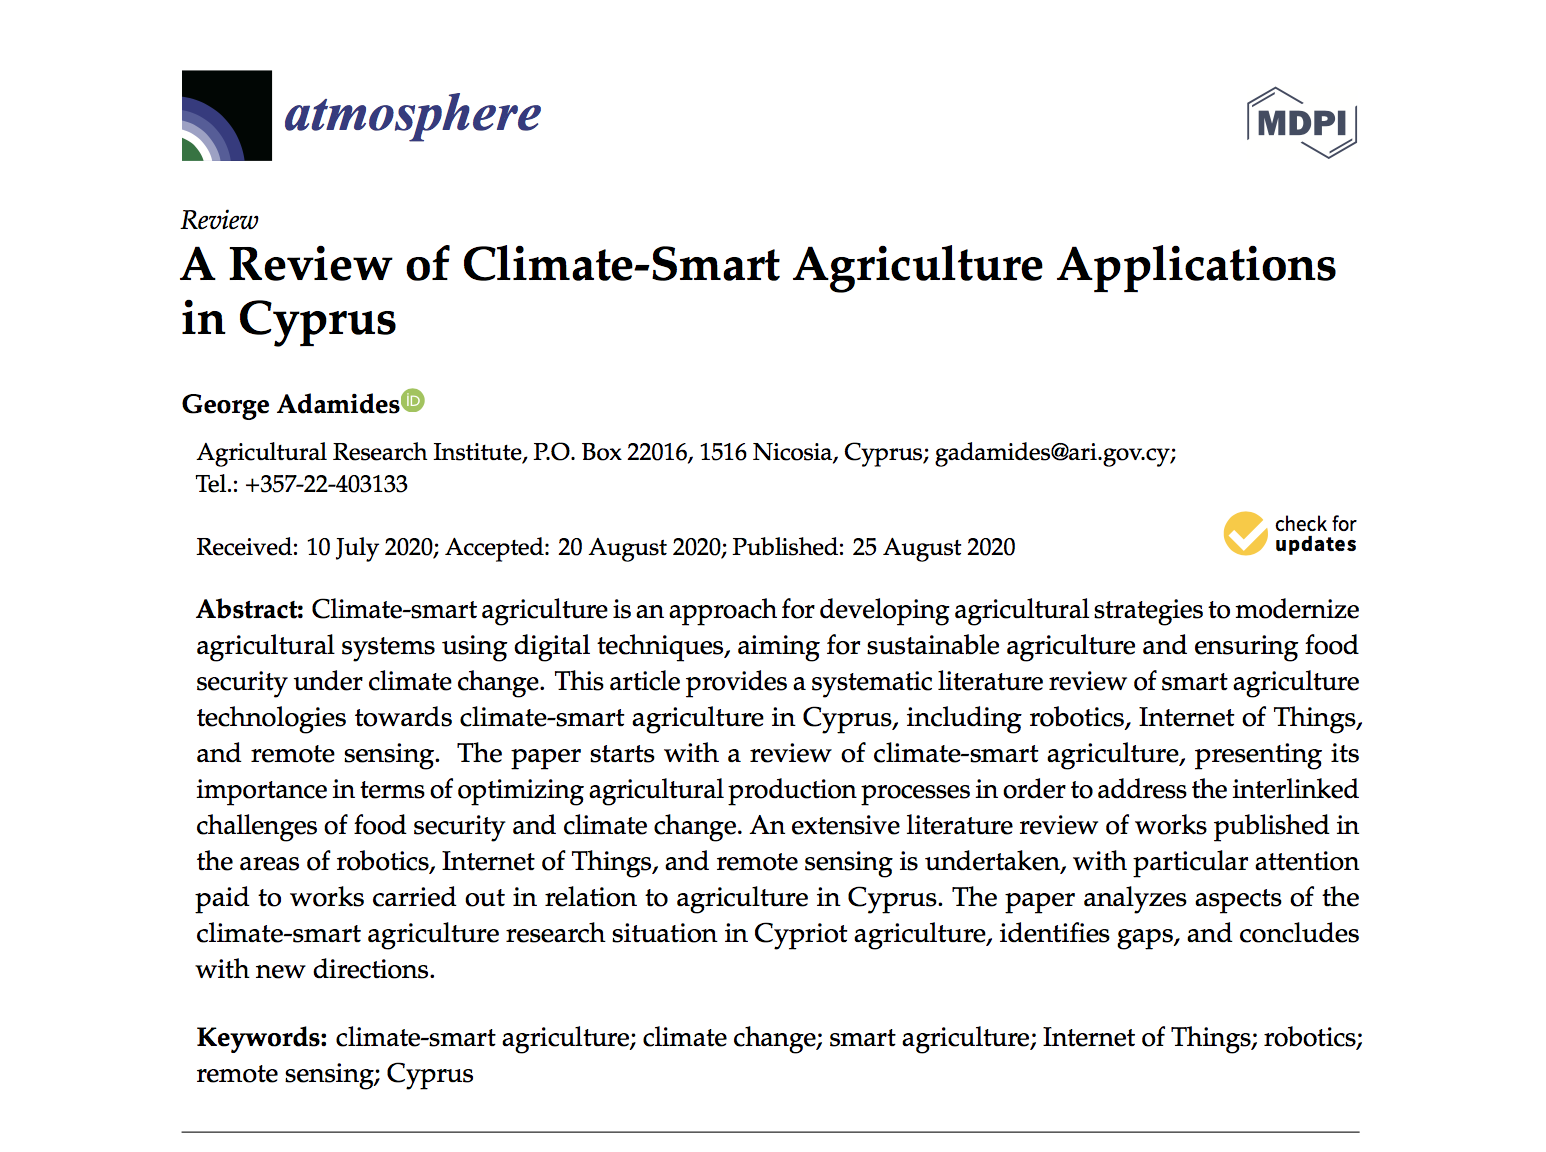 A Review of Climate-Smart Agriculture Applications in Cyprus